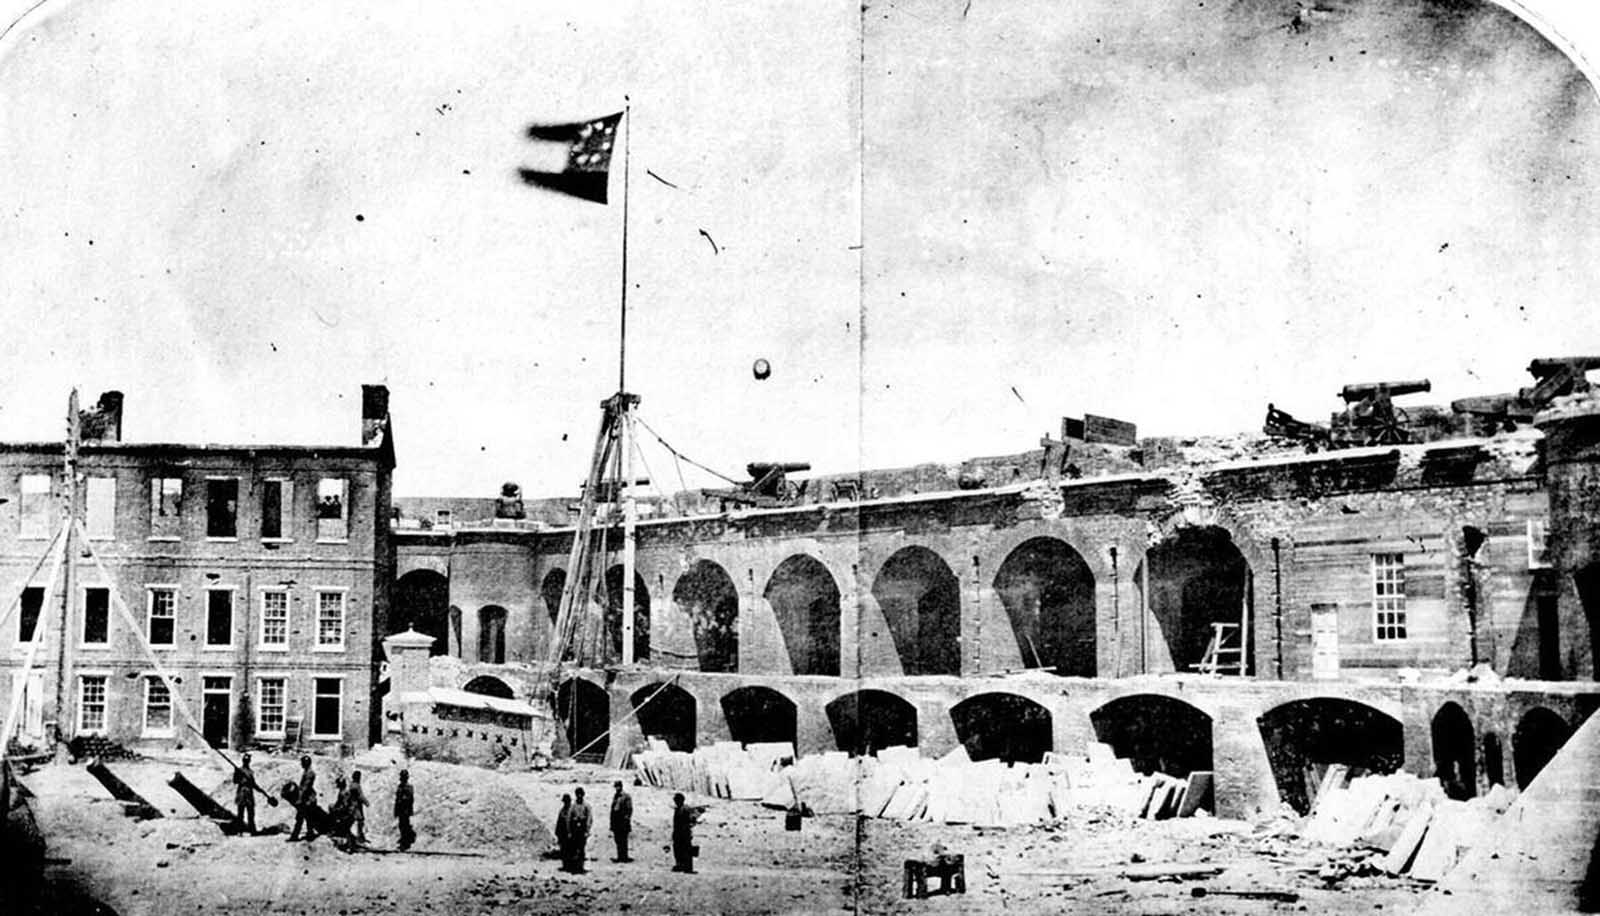 Fort Sumter, South Carolina, April, 1861, under the Confederate flag. The first shots of the Civil War took place here, on April 12, 1861, as Confederate batteries opened fire on the Union fort, bombarding it for 34 straight hours. On April 13, Union forces surrendered and evacuated the fort. Union forces made many attempts to retake the fort throughout the war, but only took possession on February 22, 1865, after Confederate forces had evacuated Charleston.